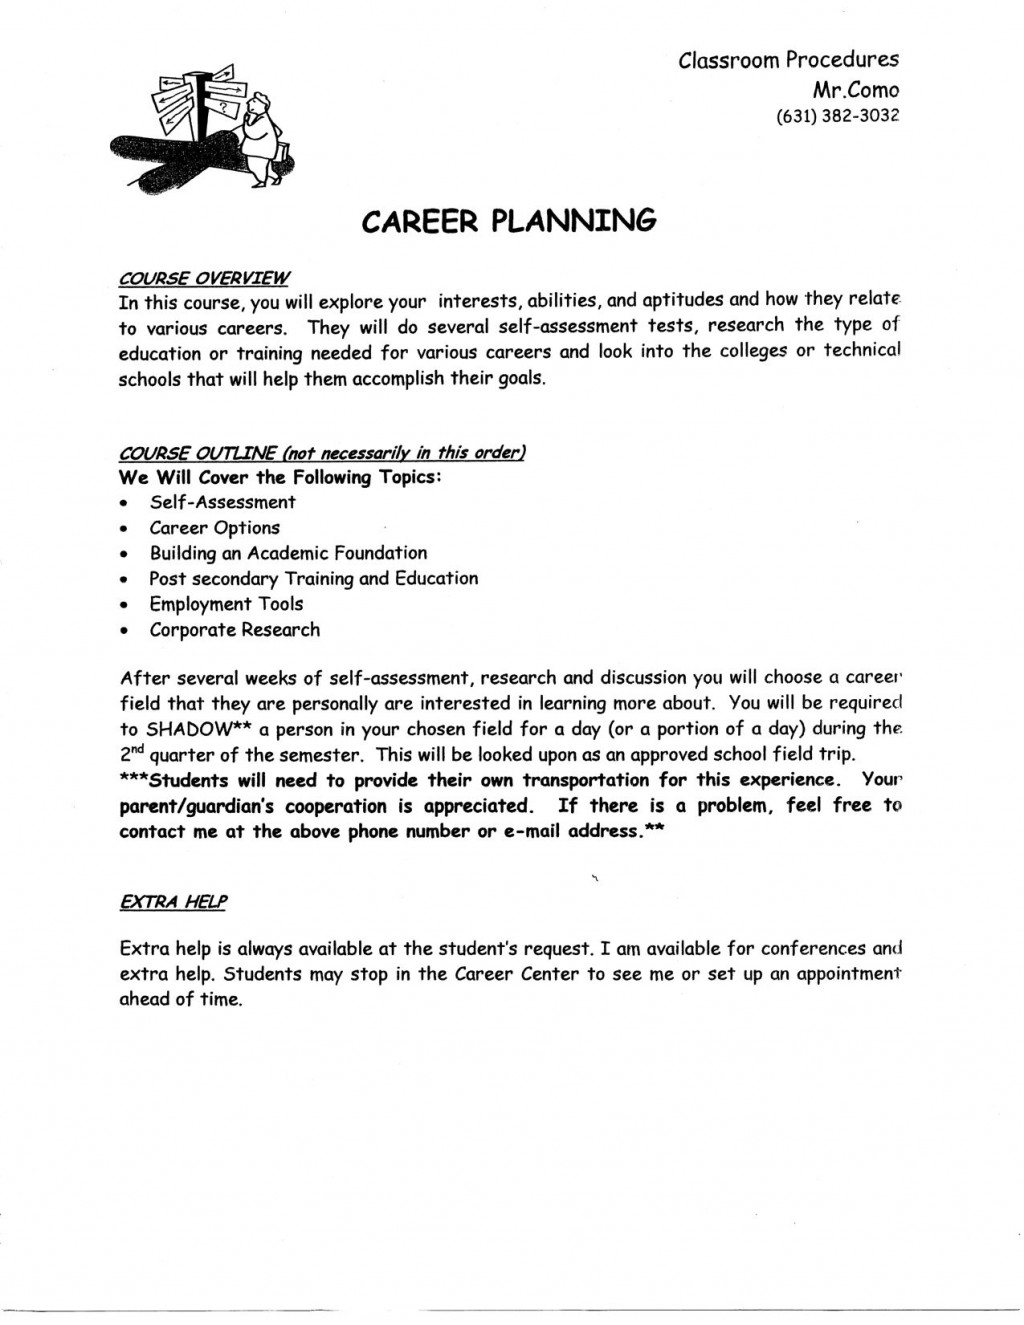 012 Essay Plan Career Planning002 Stirring Template Word Planning Sheet Critical Large